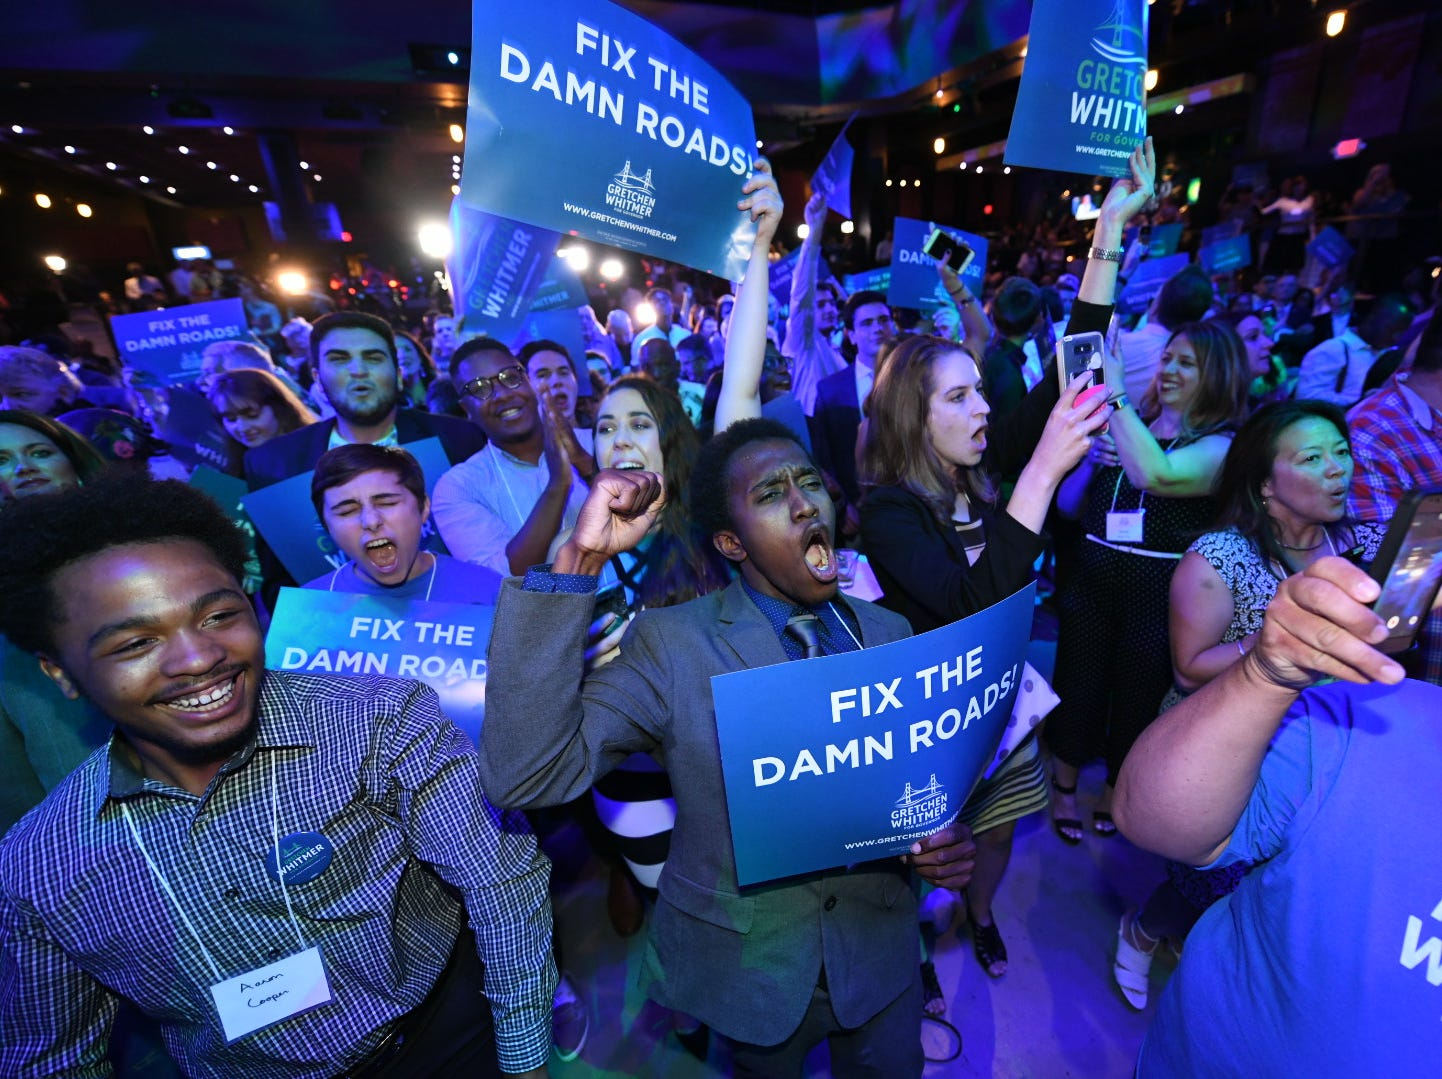 Supporters of Democratic gubernatorial candidate Gretchen Whitmer celebrate at Whitmer's election night party at the Sound Board inside Motor City Casino, in Detroit.